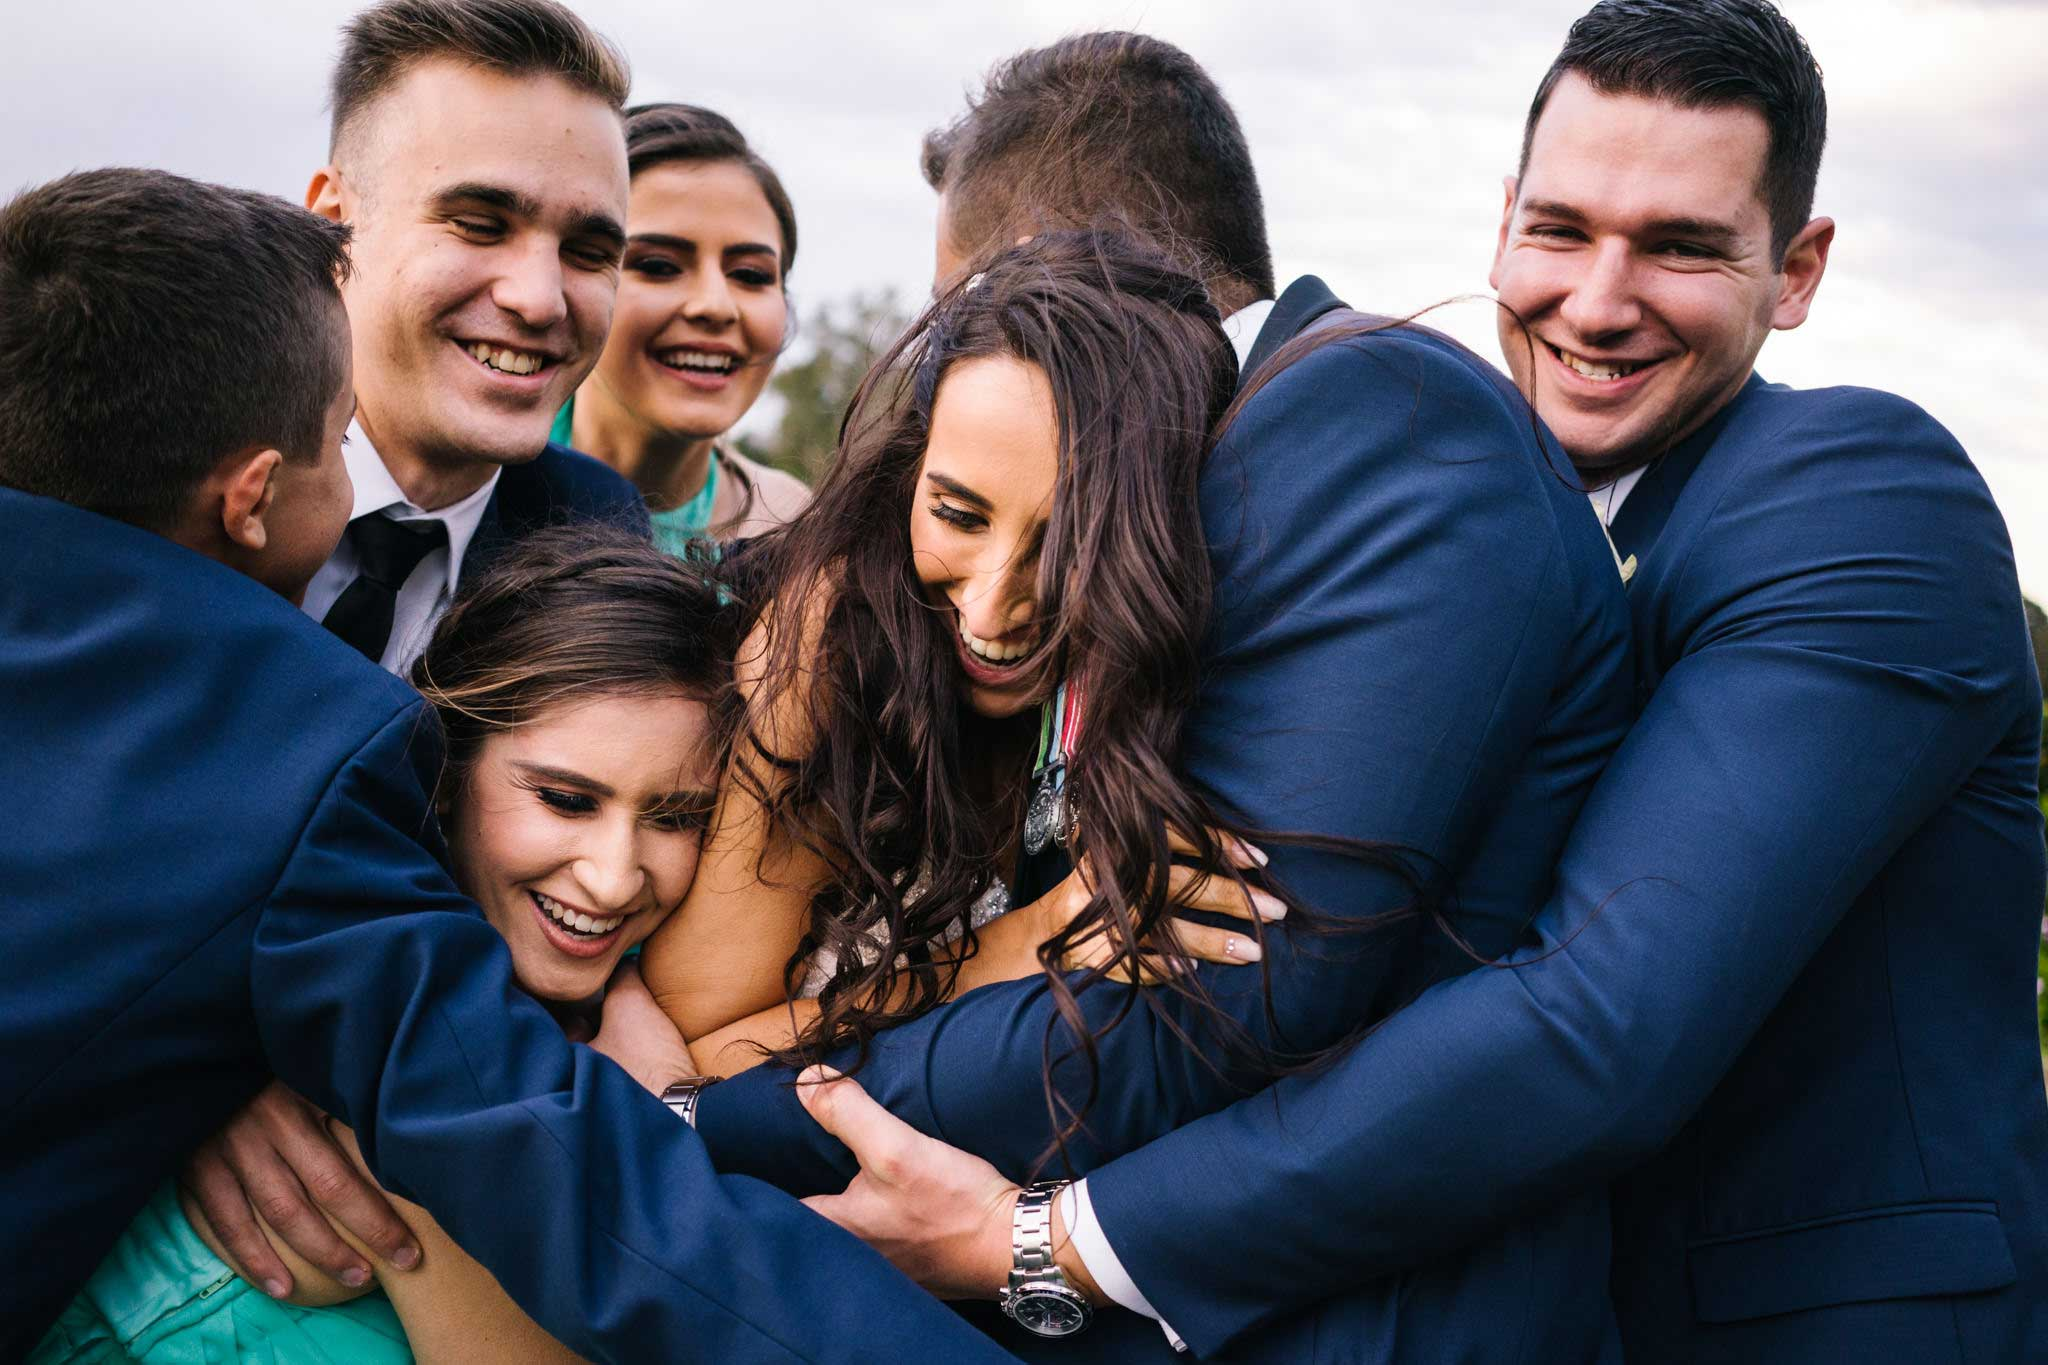 Bridal party embracing newlywed couple at Manly Golf Course